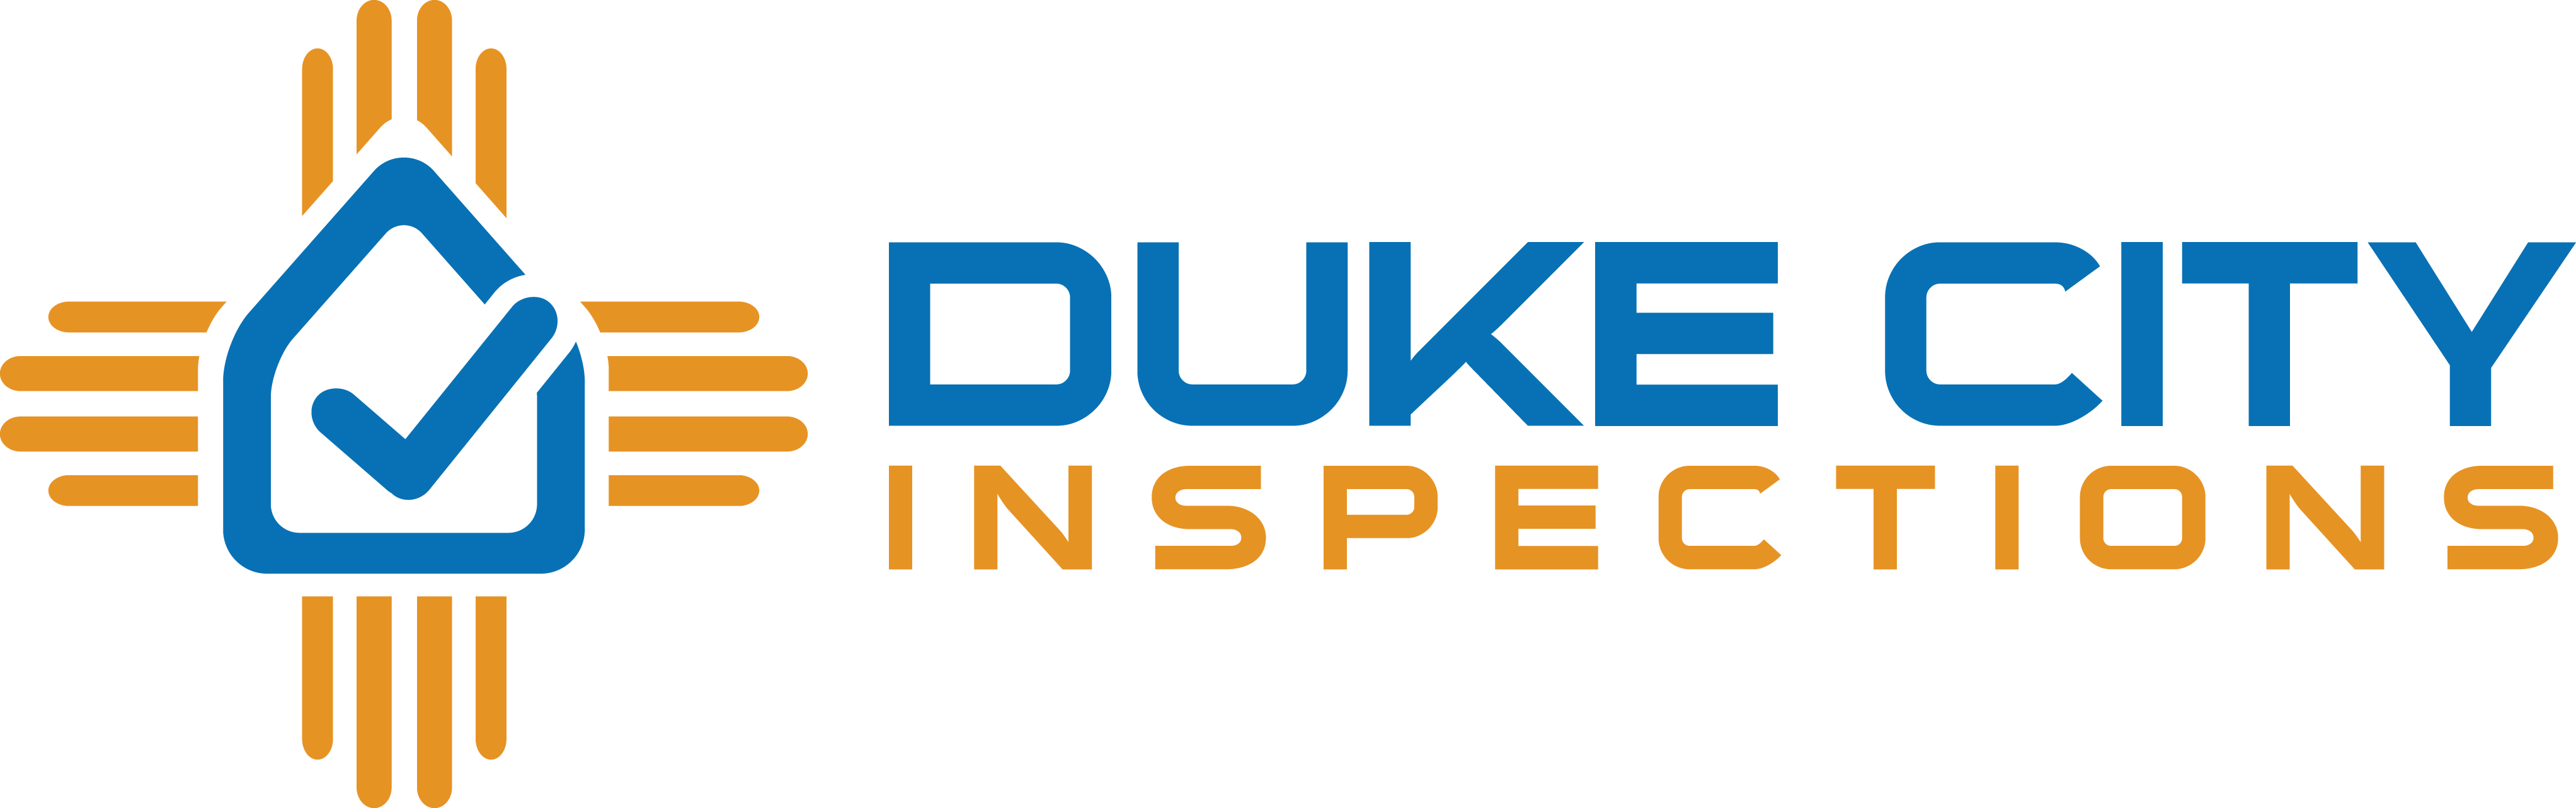 Duke city inspections logo %28rgb%29